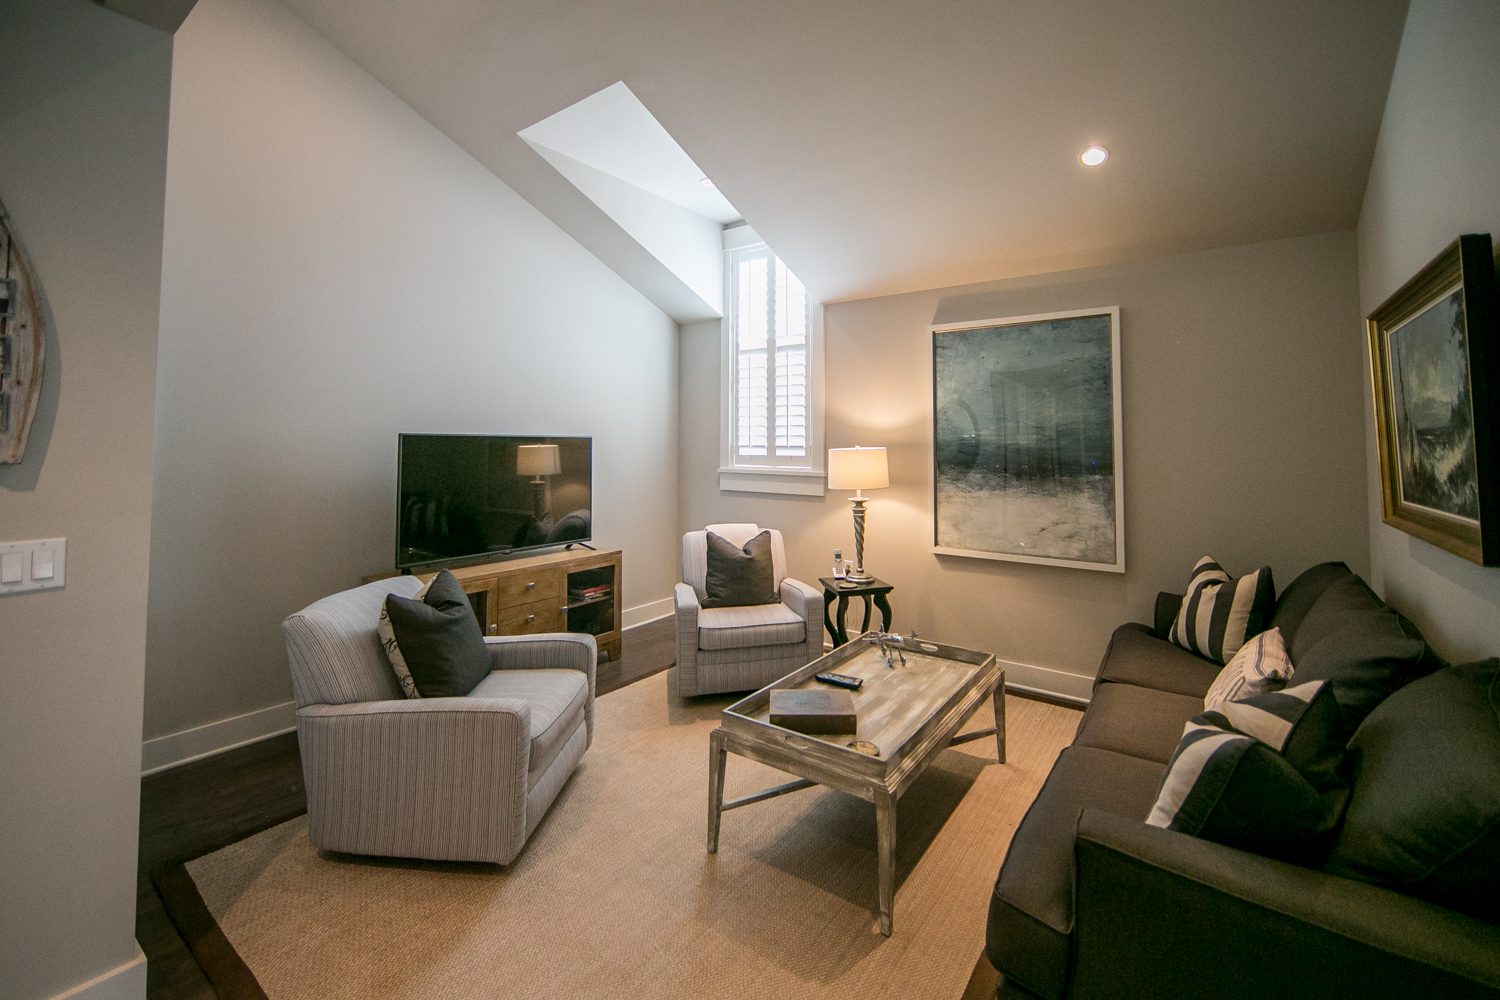 Ideal second floor living room area for kids to hang out